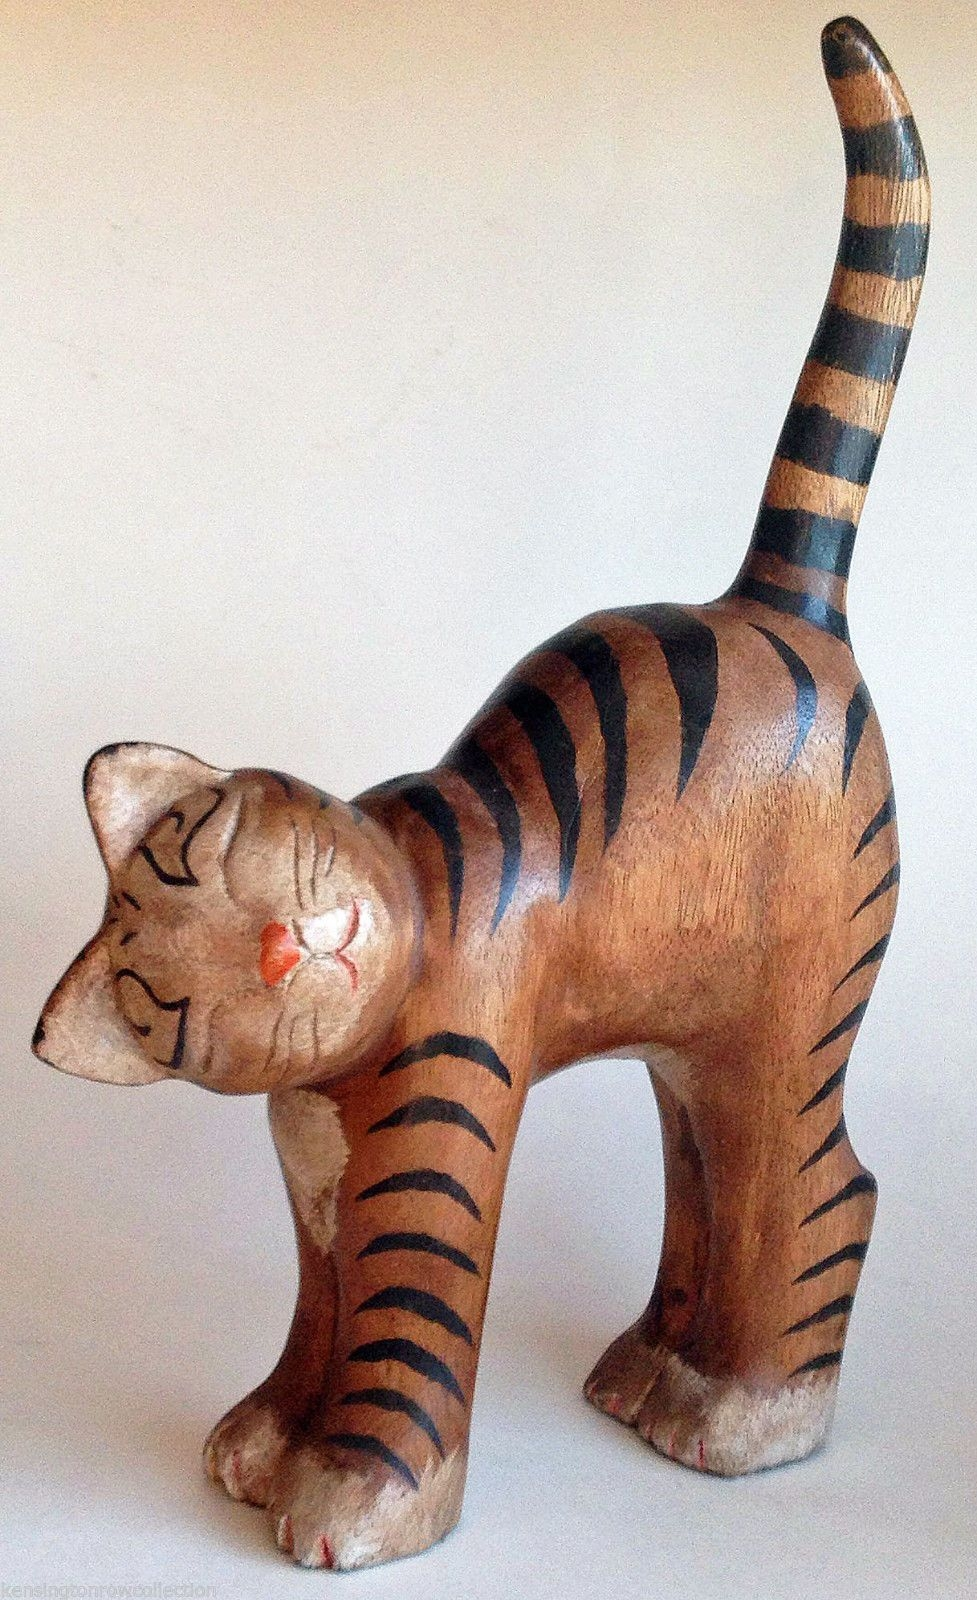 Cats - Stretching Cat Wood Carving - Wooden Cat Figurine - Cat Sculpture - Cat Door & Cat Door Stop - Foter